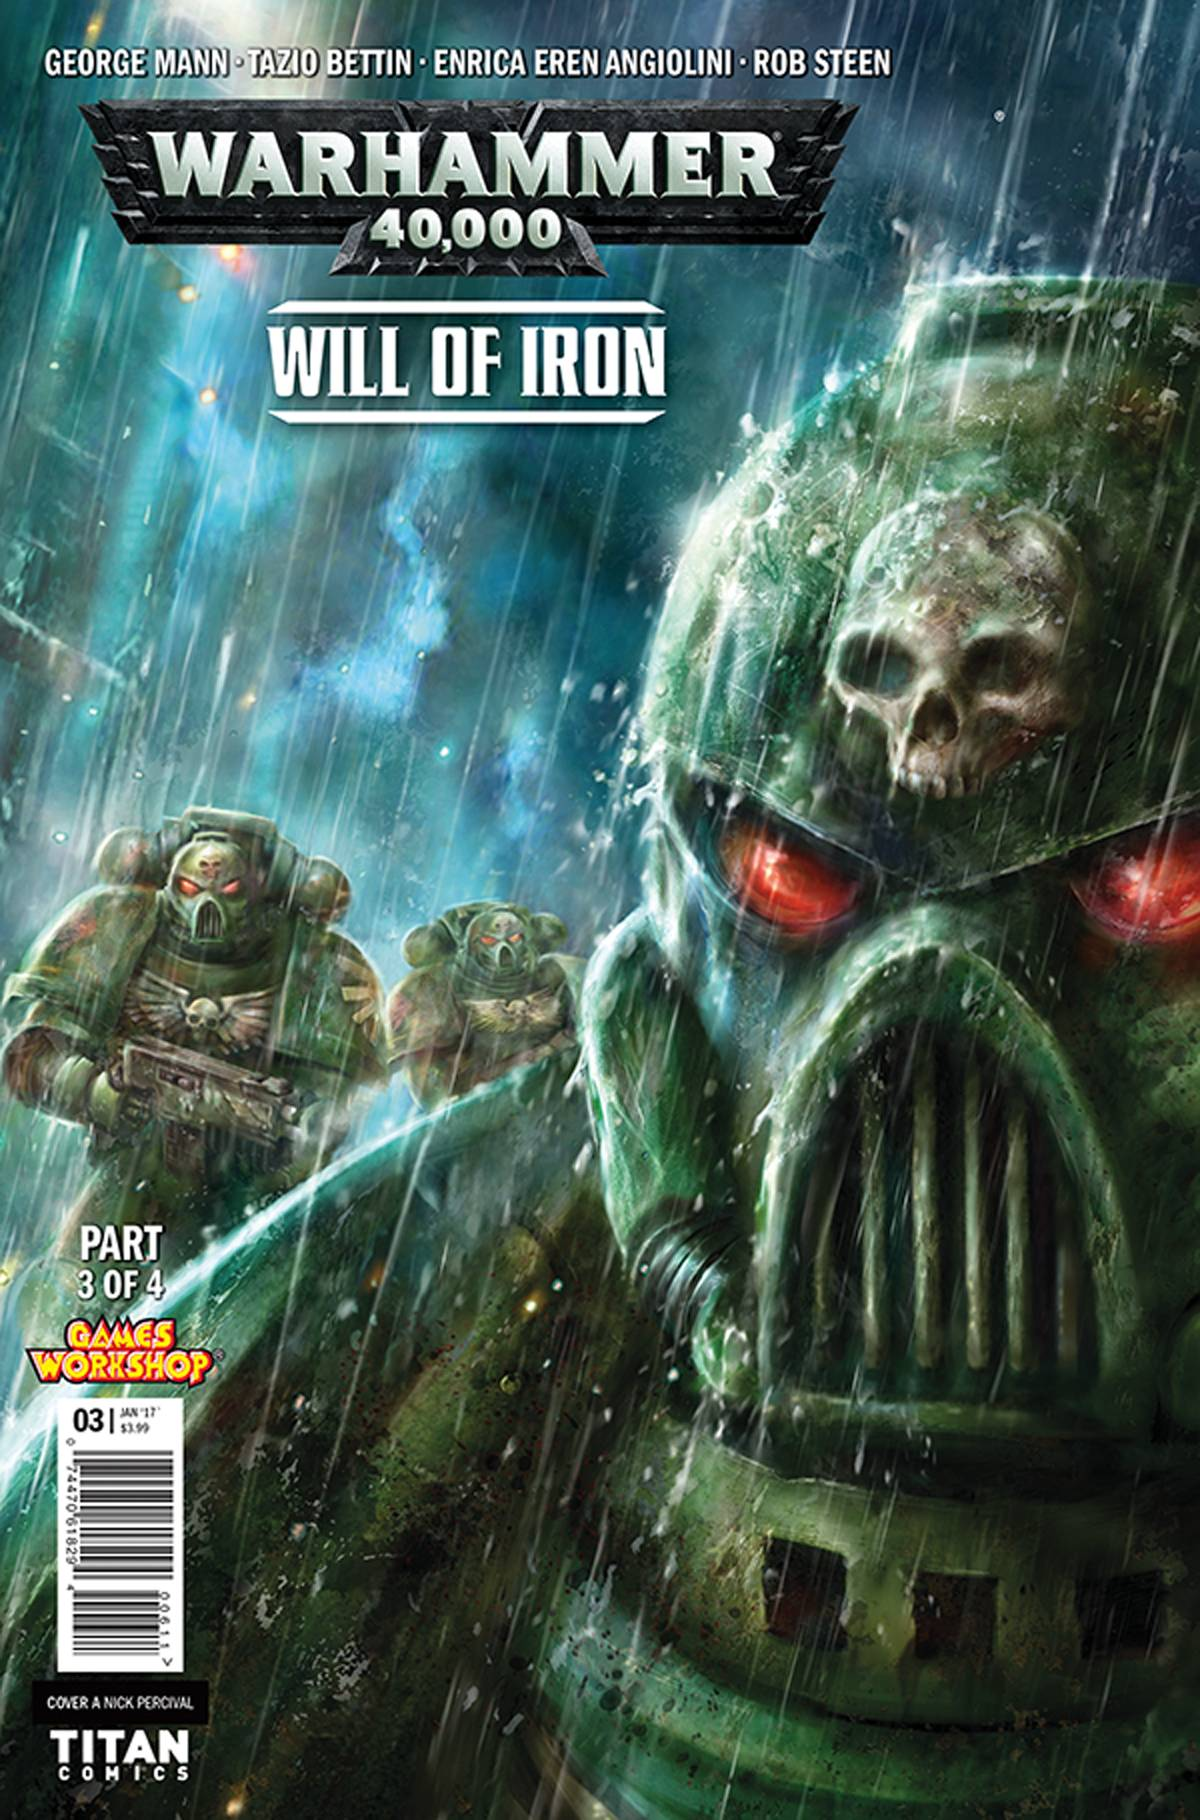 WARHAMMER 40000 WILL OF IRON #3 (OF 4) CVR A PERCIVAL